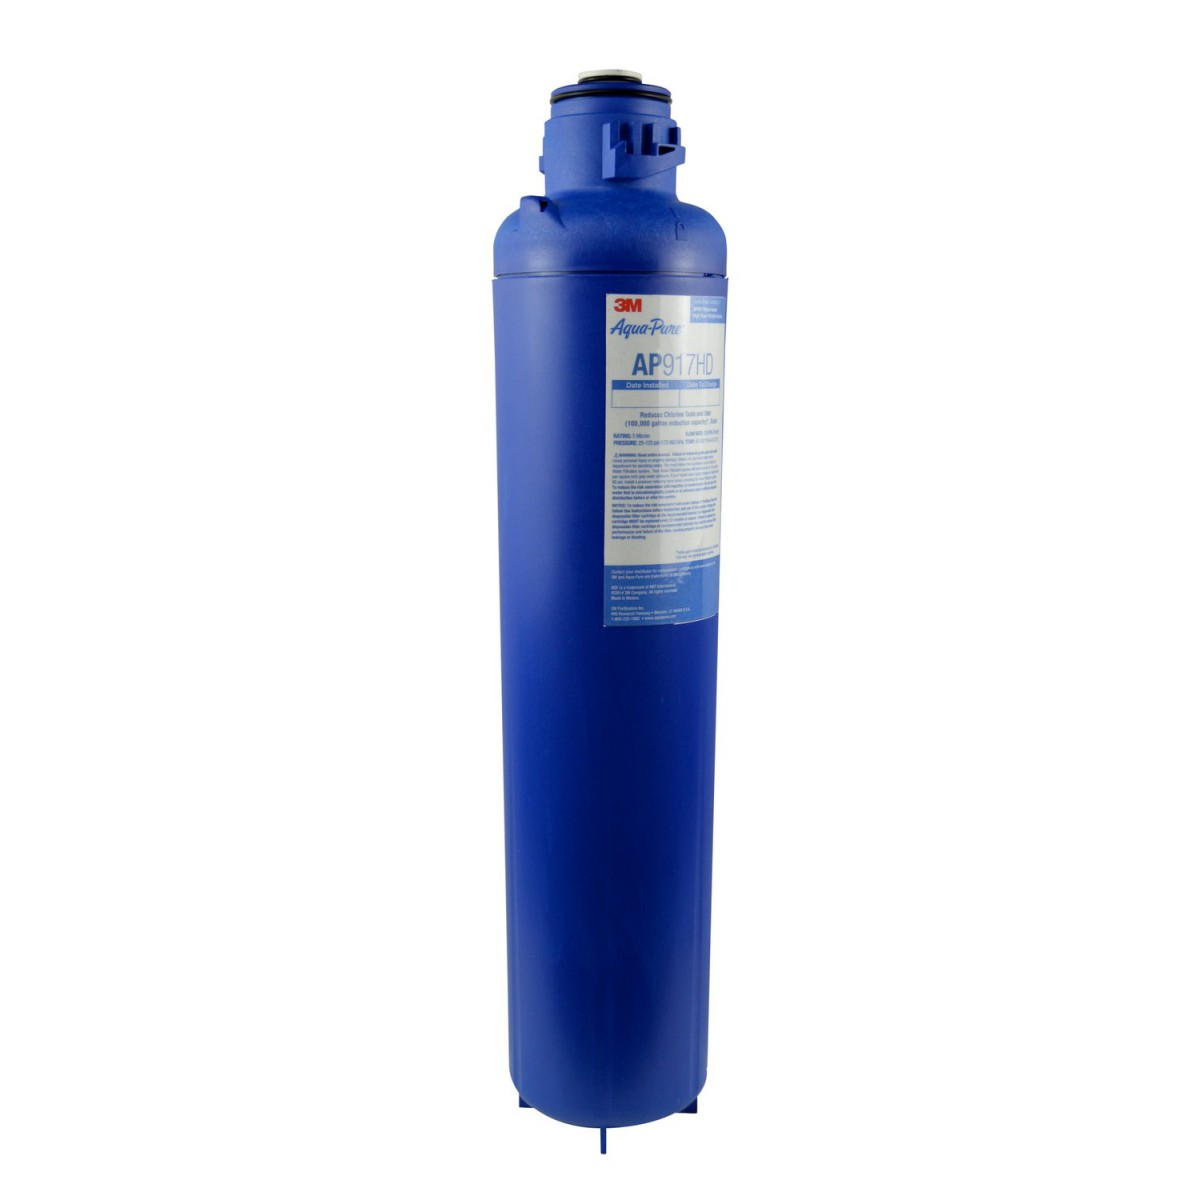 Ap917hd Whole House Water Filter Replacement By 3m Aqua Pure